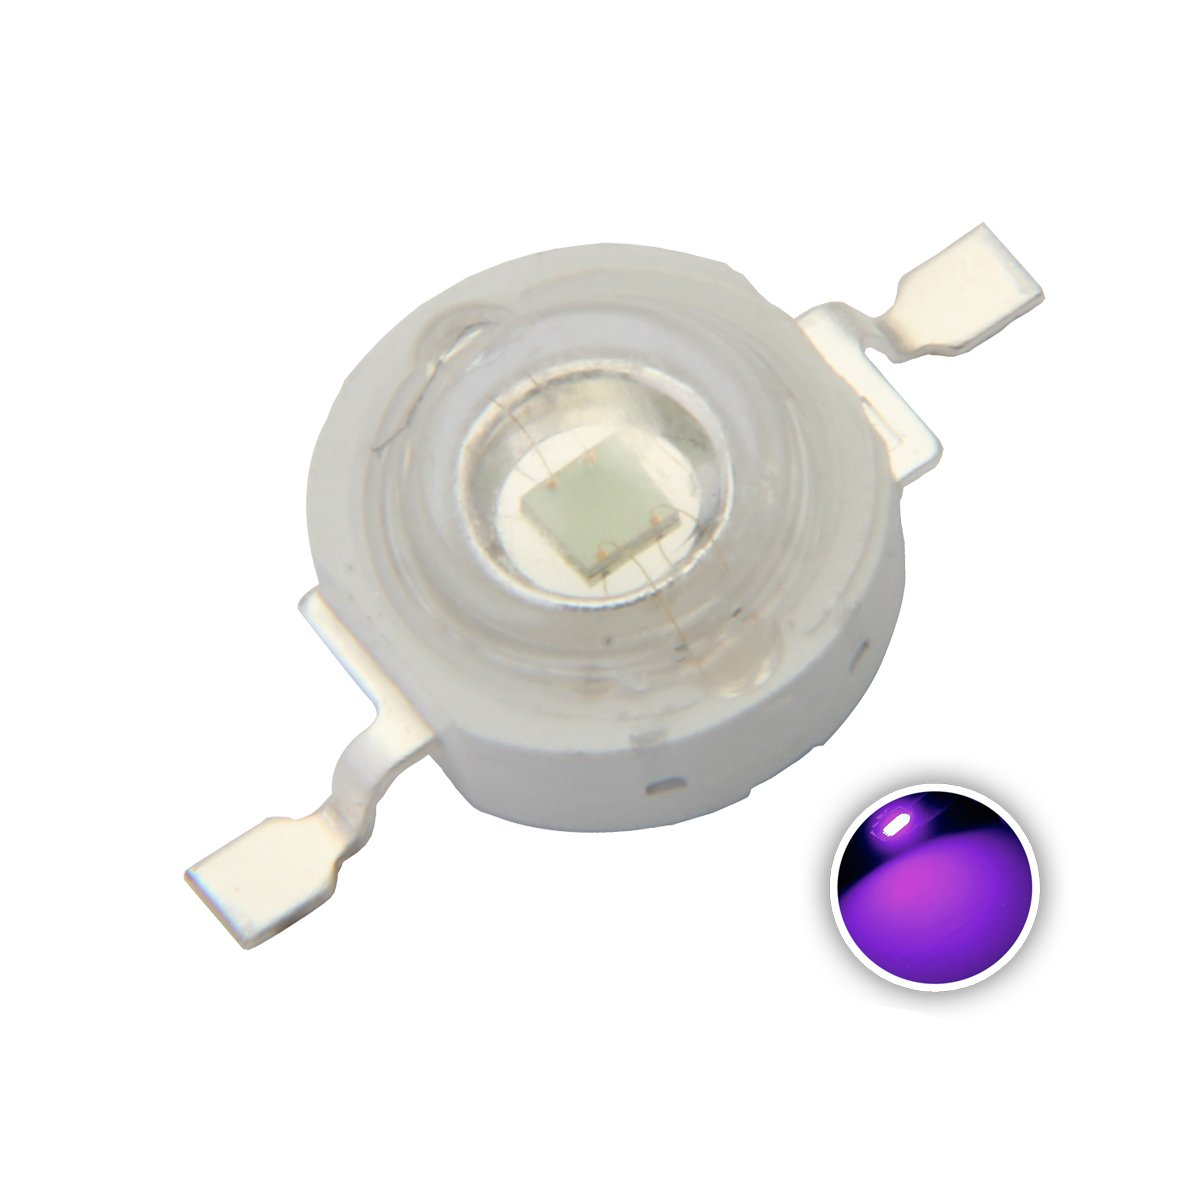 Chanzon 10 pcs High Power Led Chip 3W Purple Ultraviolet (UV 365nm/400mA-500mA/DC 3V-3.2V/3 Watt) SMD COB Light Emitter Components Diode 3 W Ultra Violet Bulb Lamp Beads DIY Lighting